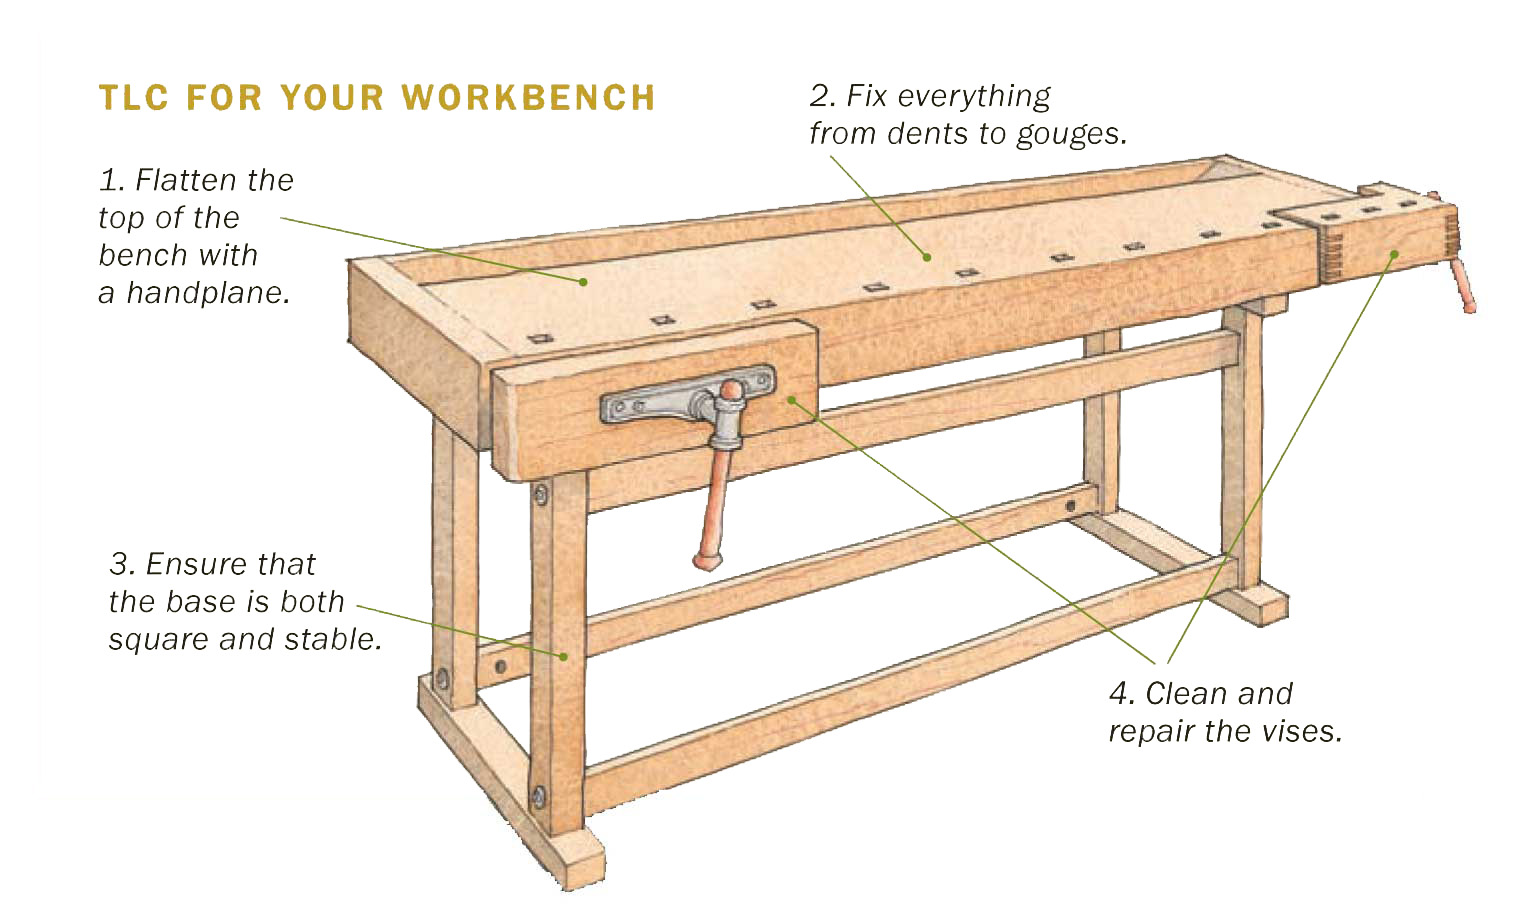 woodworking knowledge a range traditionally has blog construction m monster duty is heavy designed our the flagship bench premium axminster sjobergs and benches completing